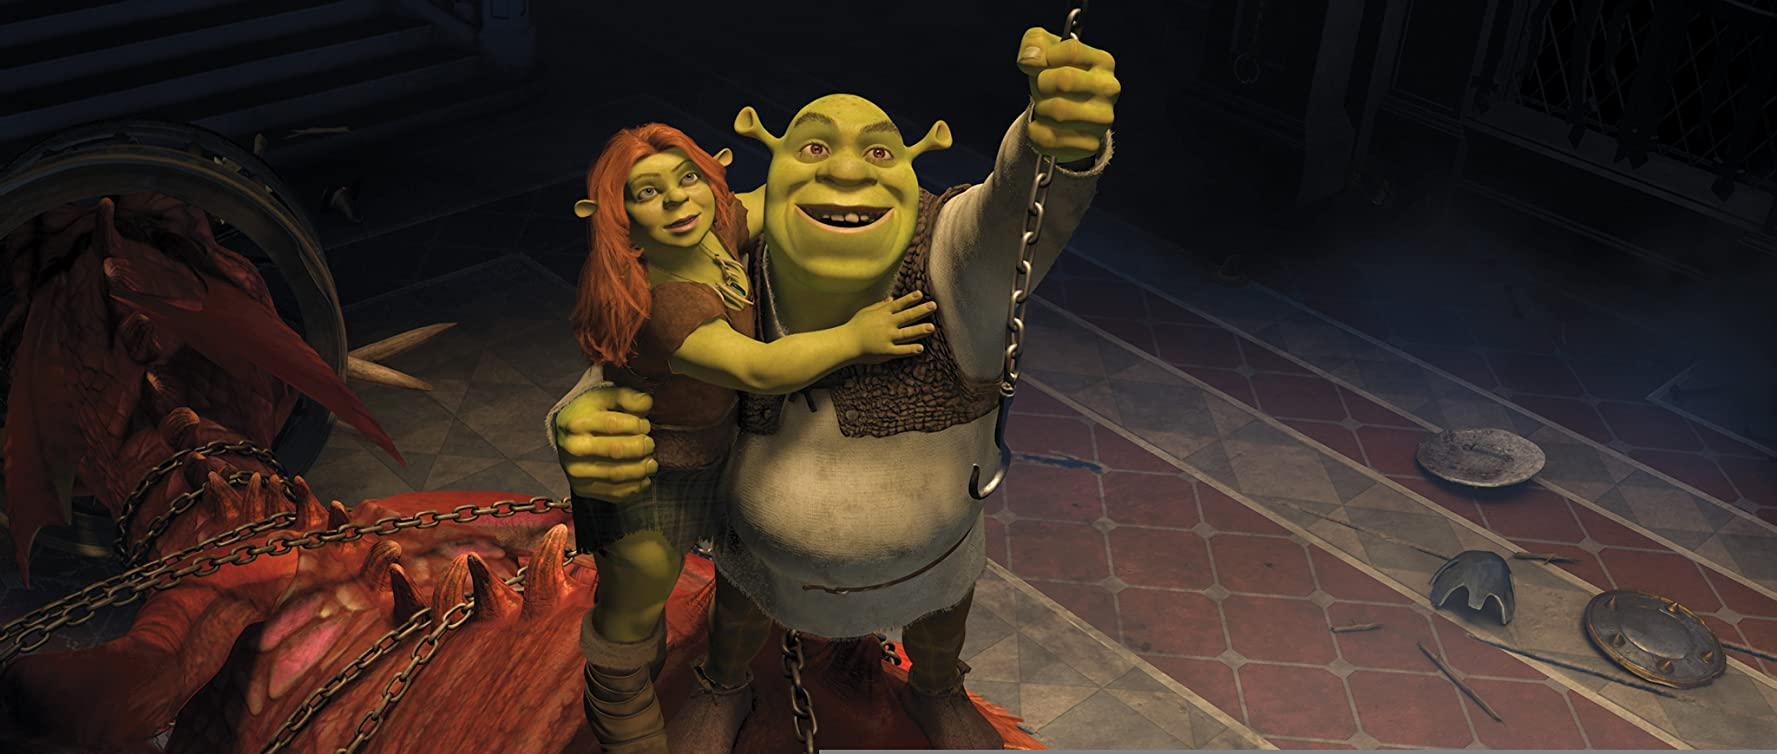 Cameron Diaz and Mike Myers in Shrek Forever After (2010)